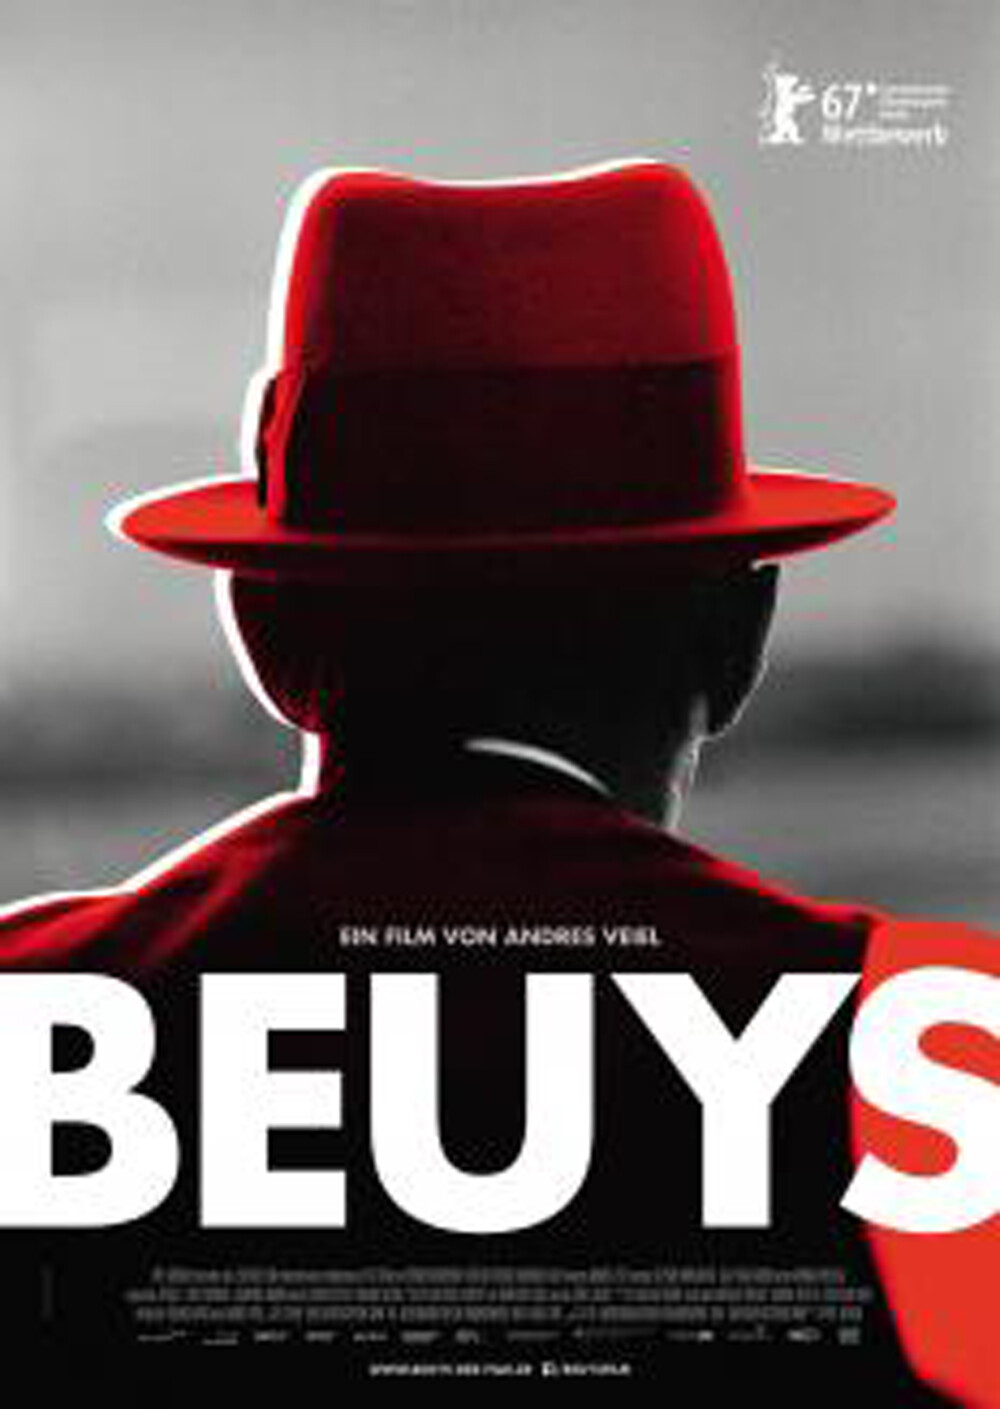 BEUYS - Three Times Nominated for the German Film Award